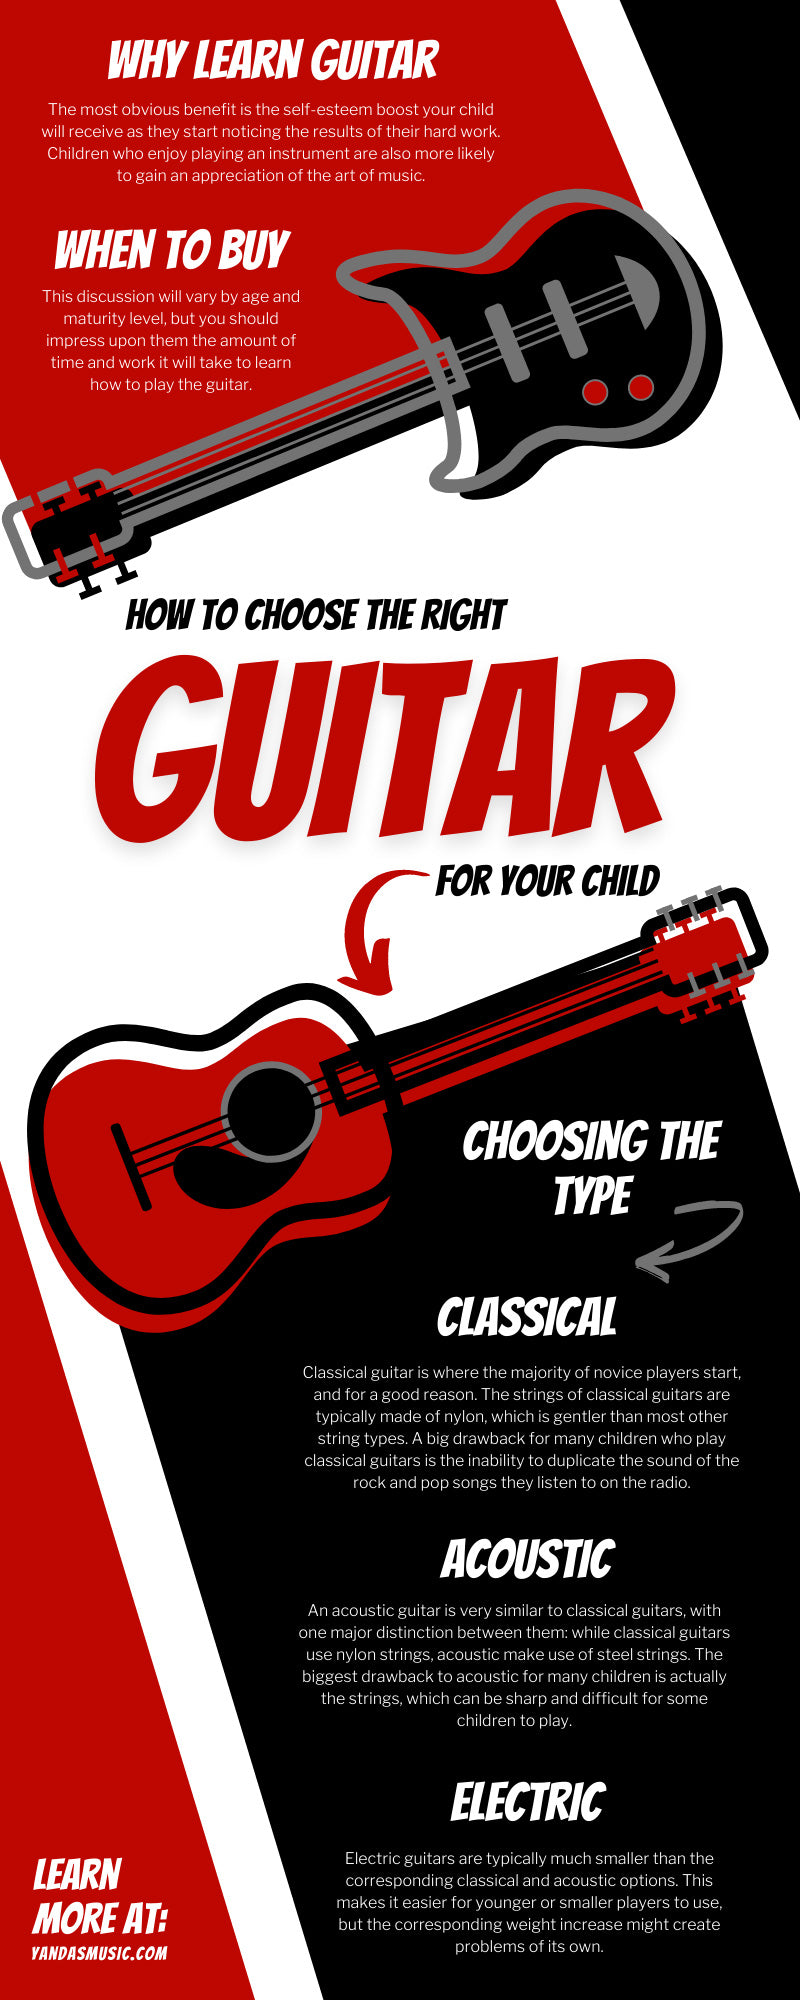 Choosing the right guitar